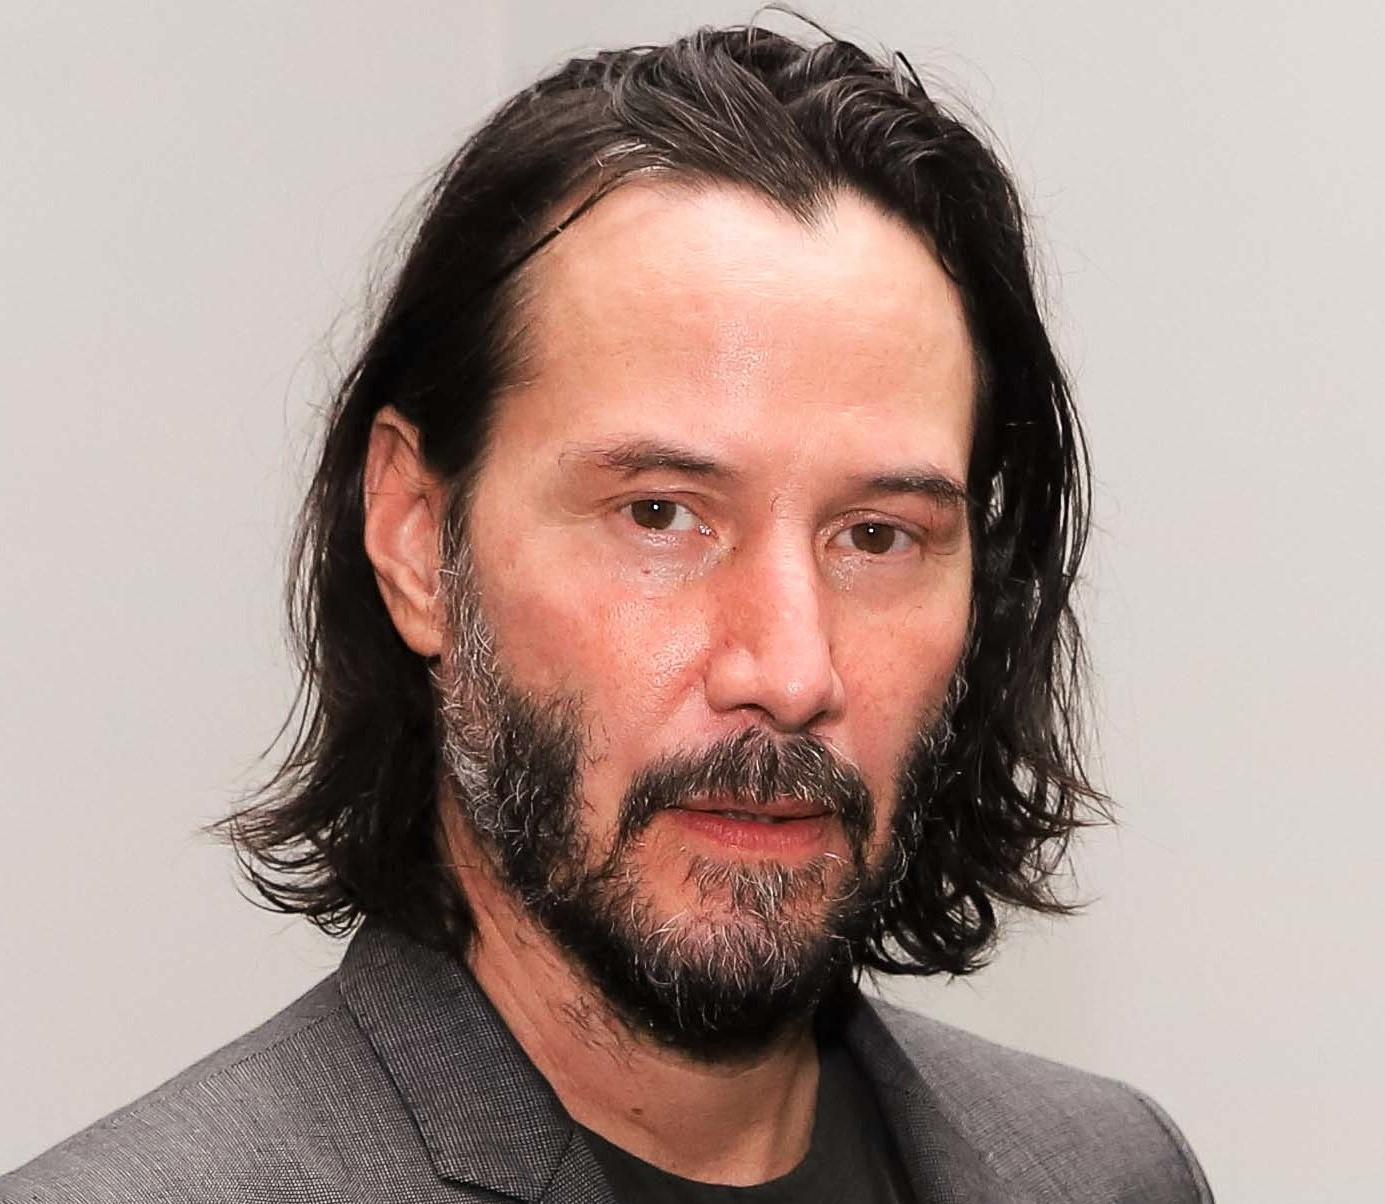 Keanu Reeves Biography- Early Life, Wife, Movies, Relationships & Net Worth